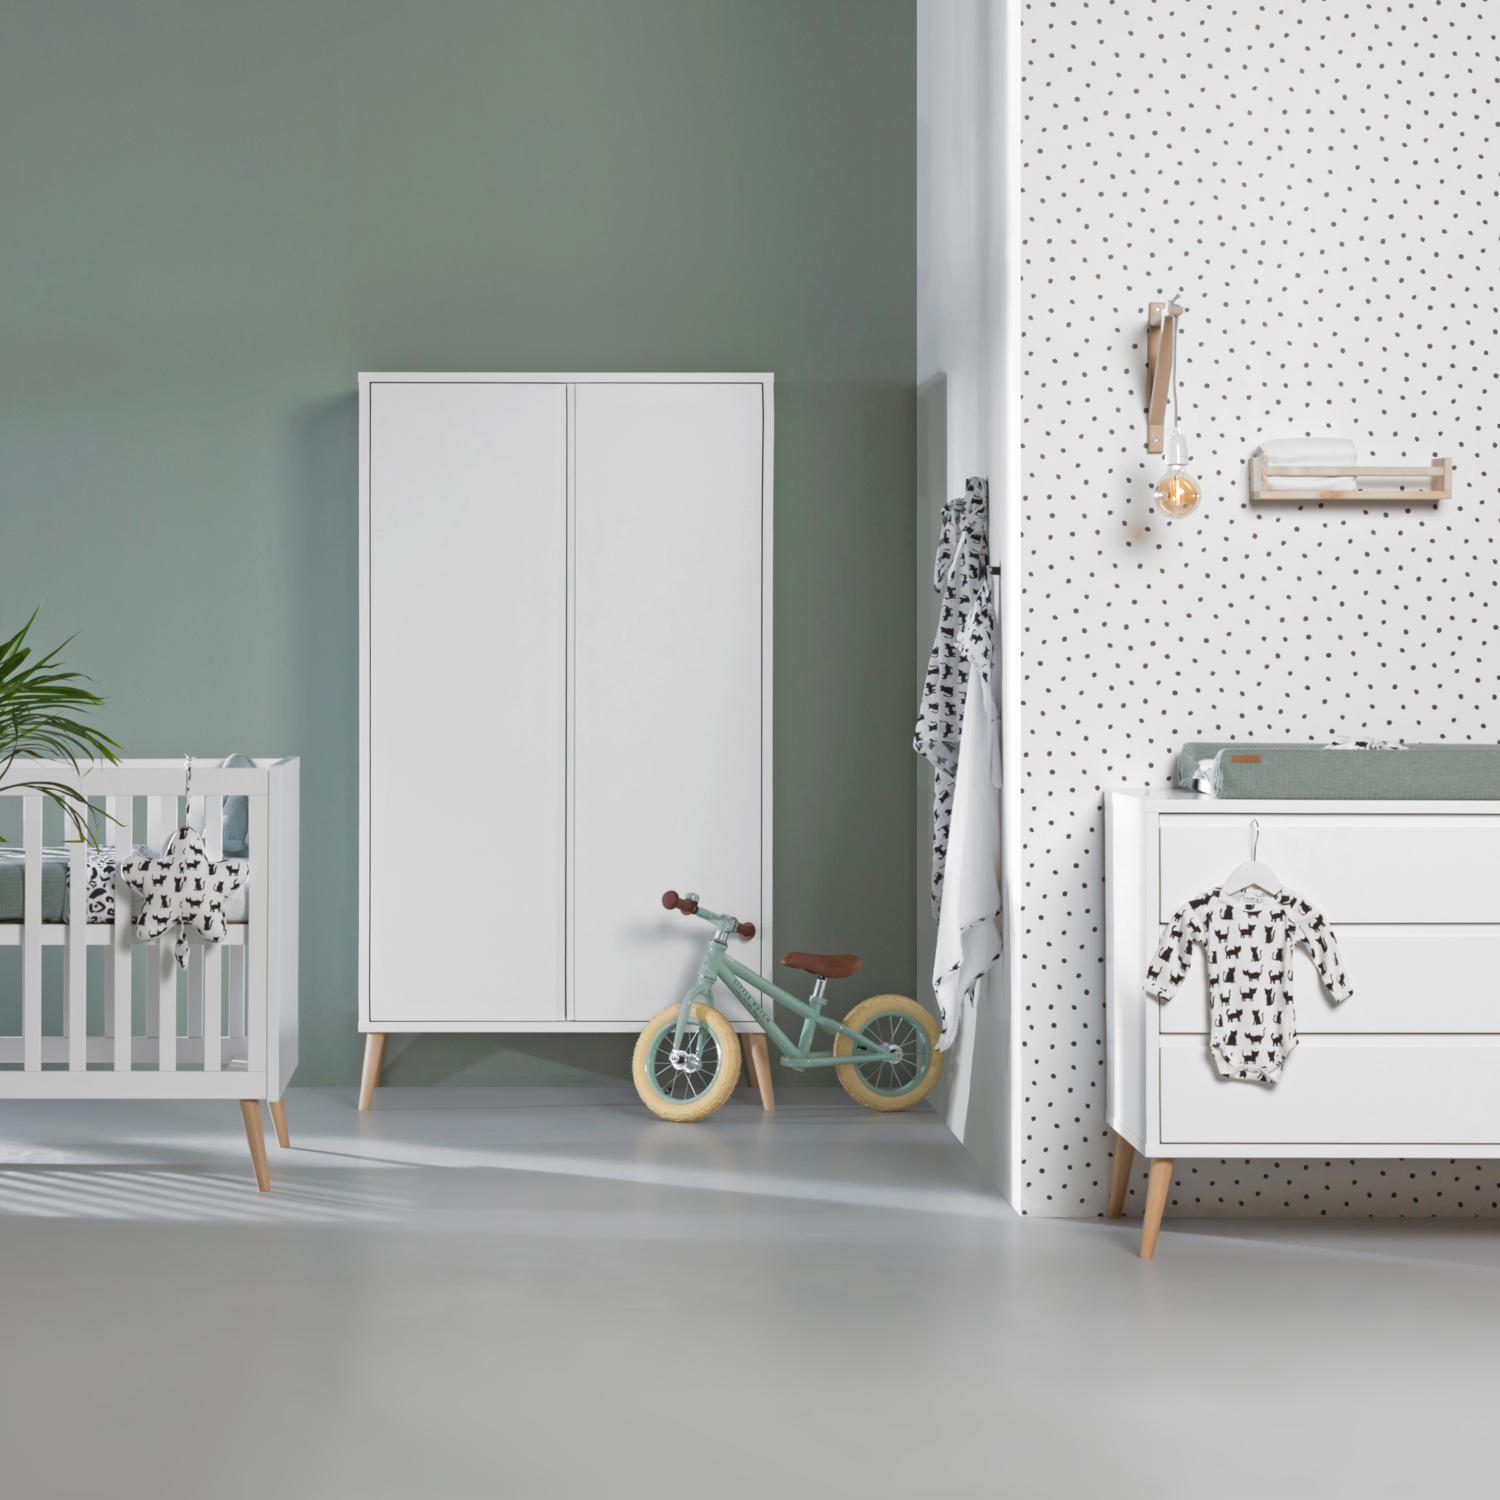 Europe Baby Sterre Babykamer Wit | Commode + Kast